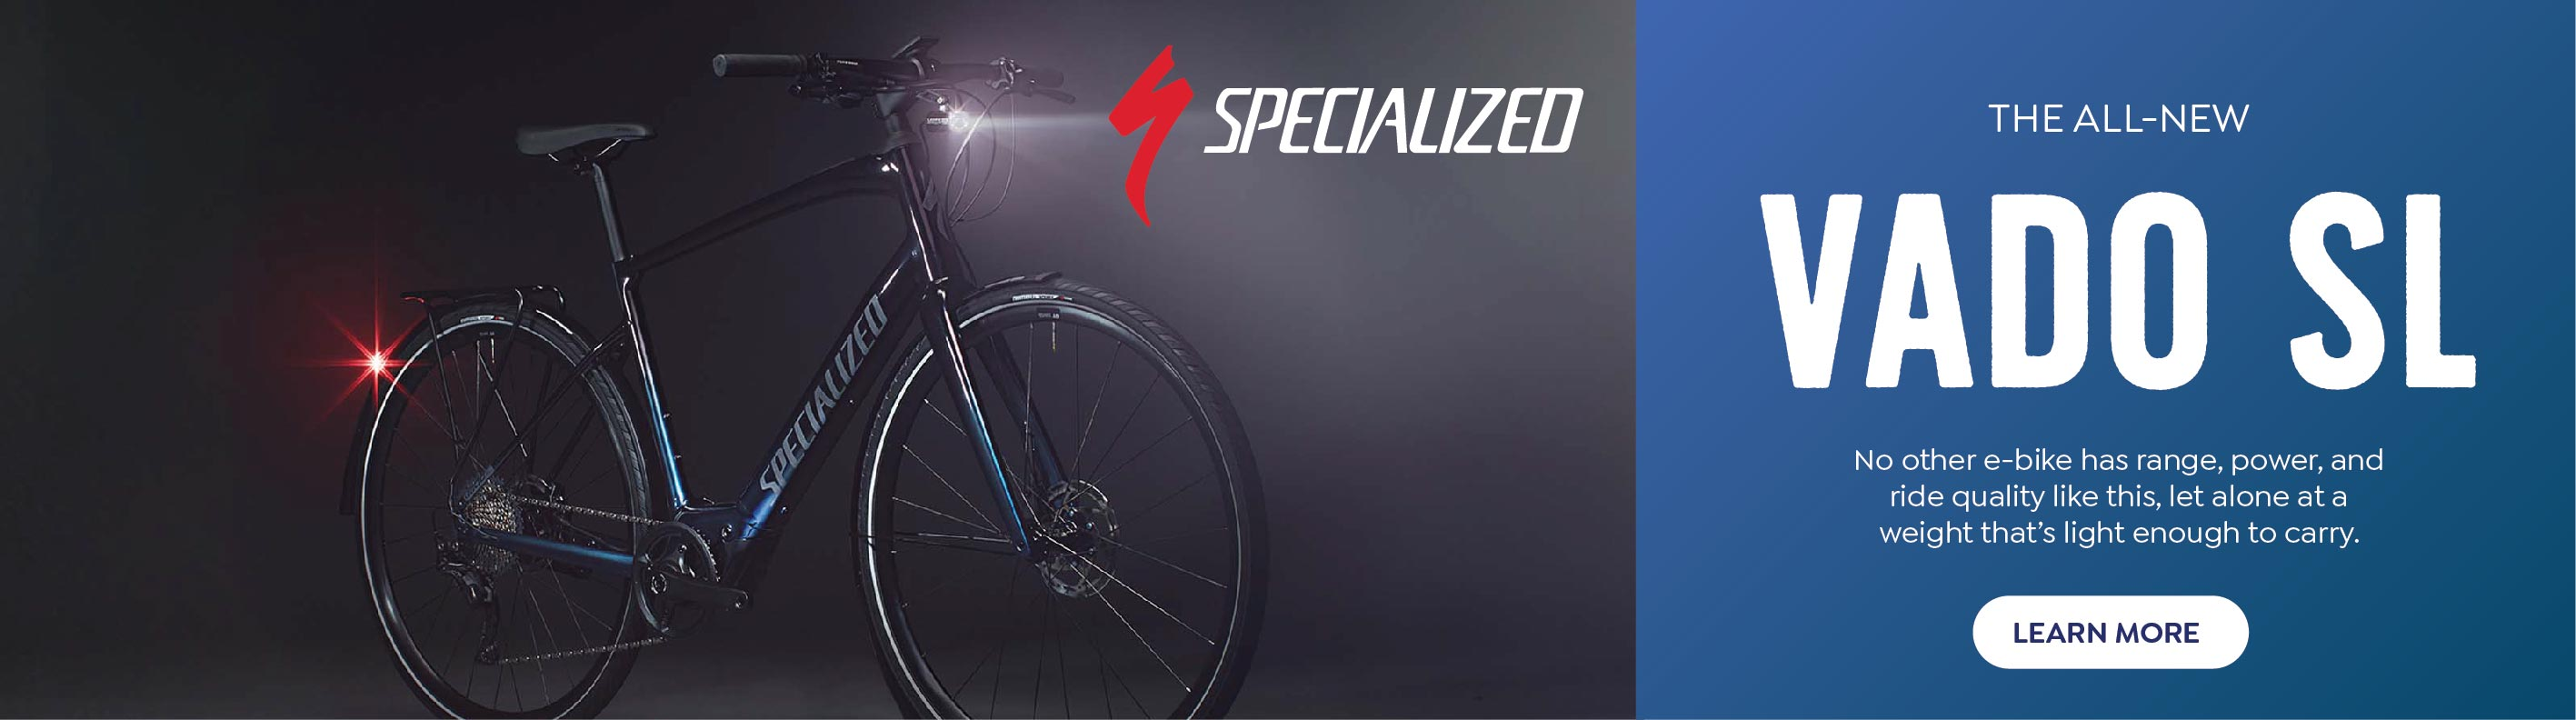 Specialized Vado SL E bike